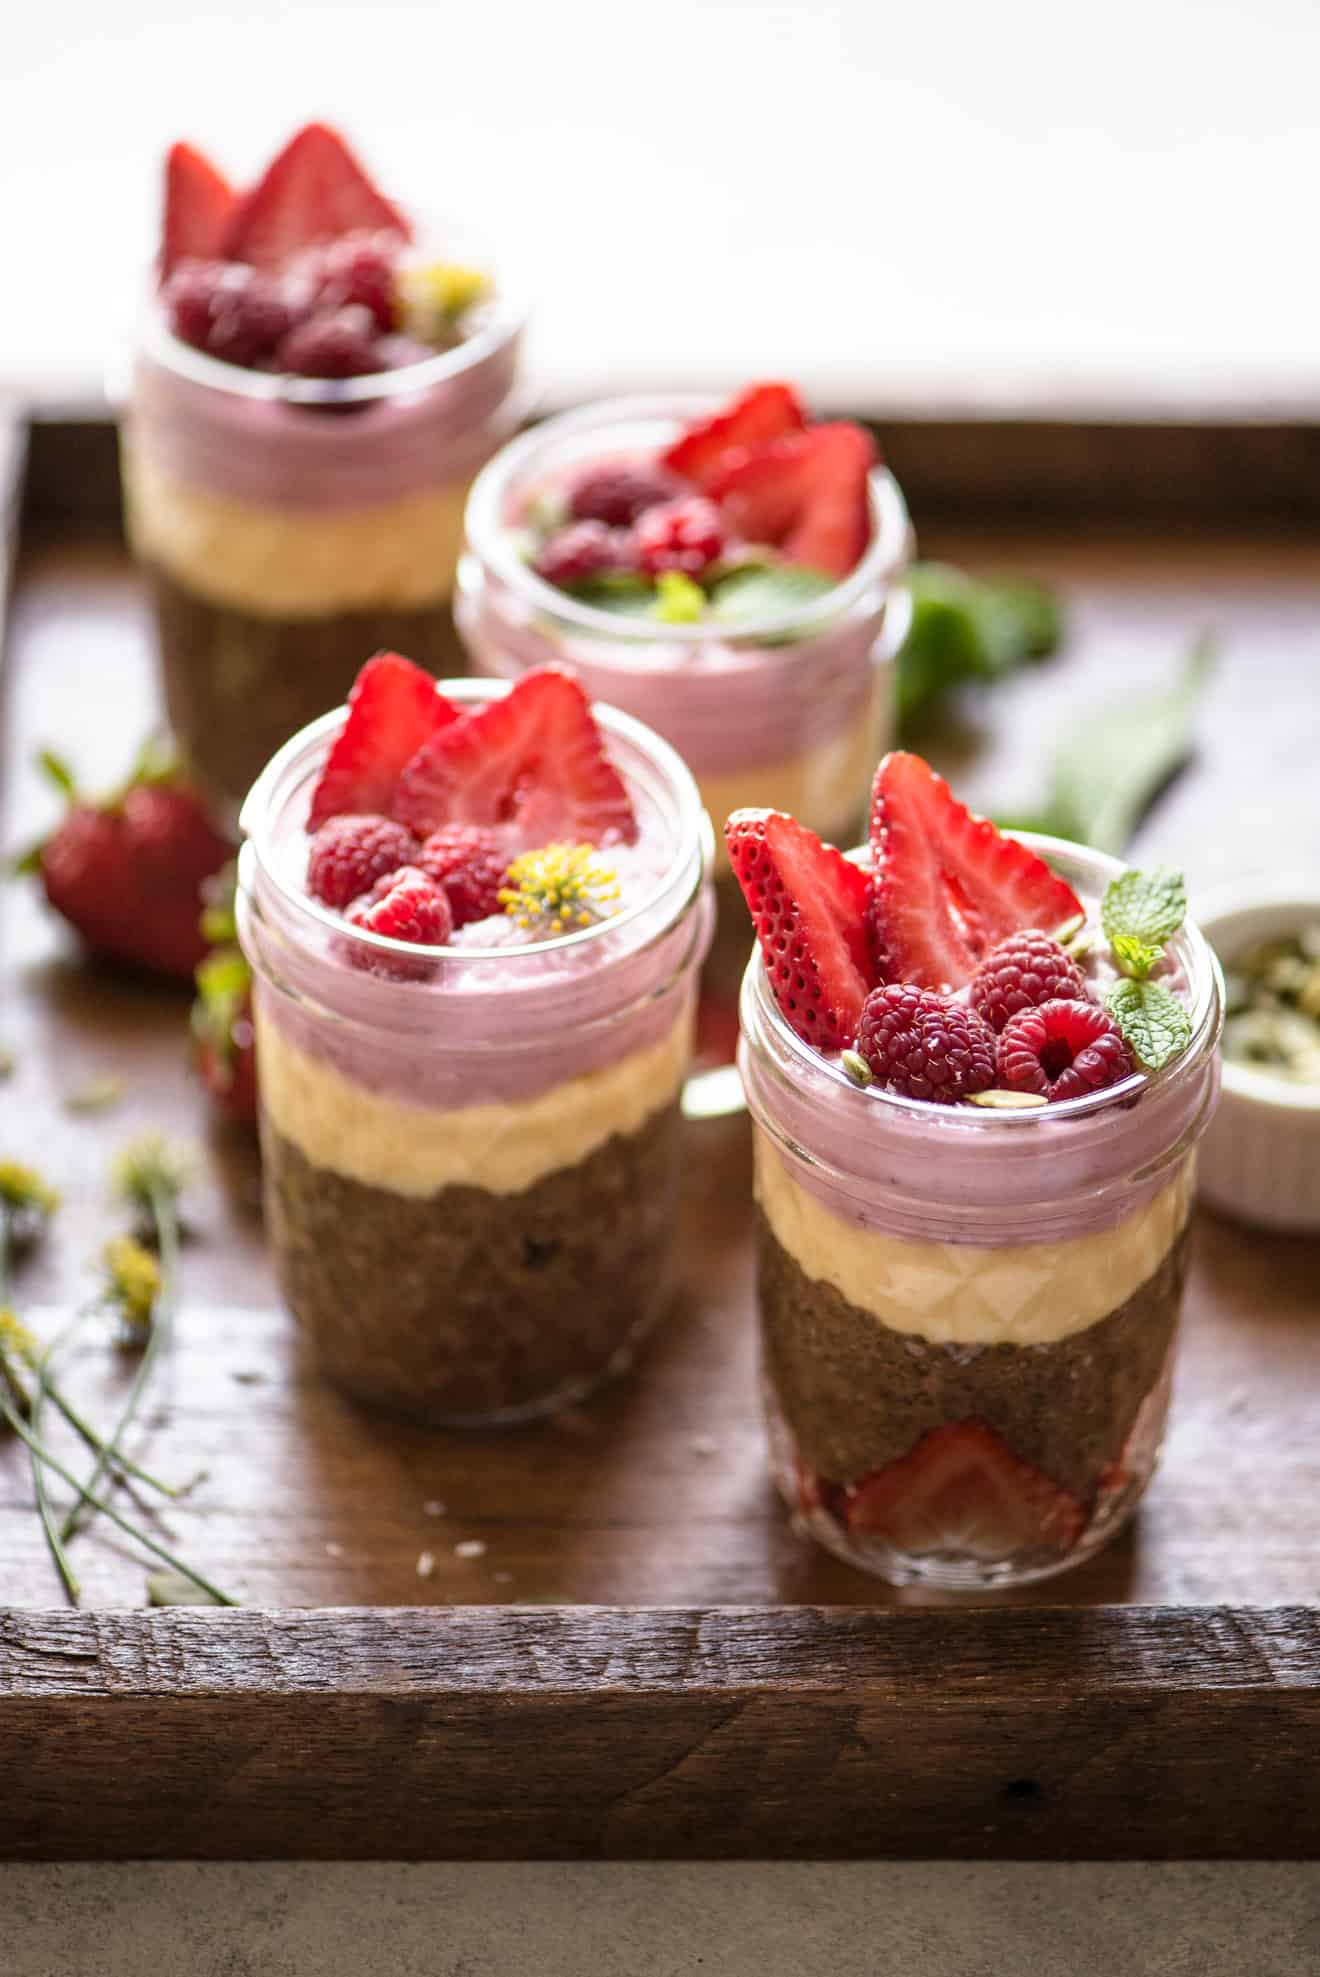 VEGAN Chocolate Chia Pudding Parfaits with Mango & Mixed Berry Mousse - a simple, healthy dessert that is great for summer!